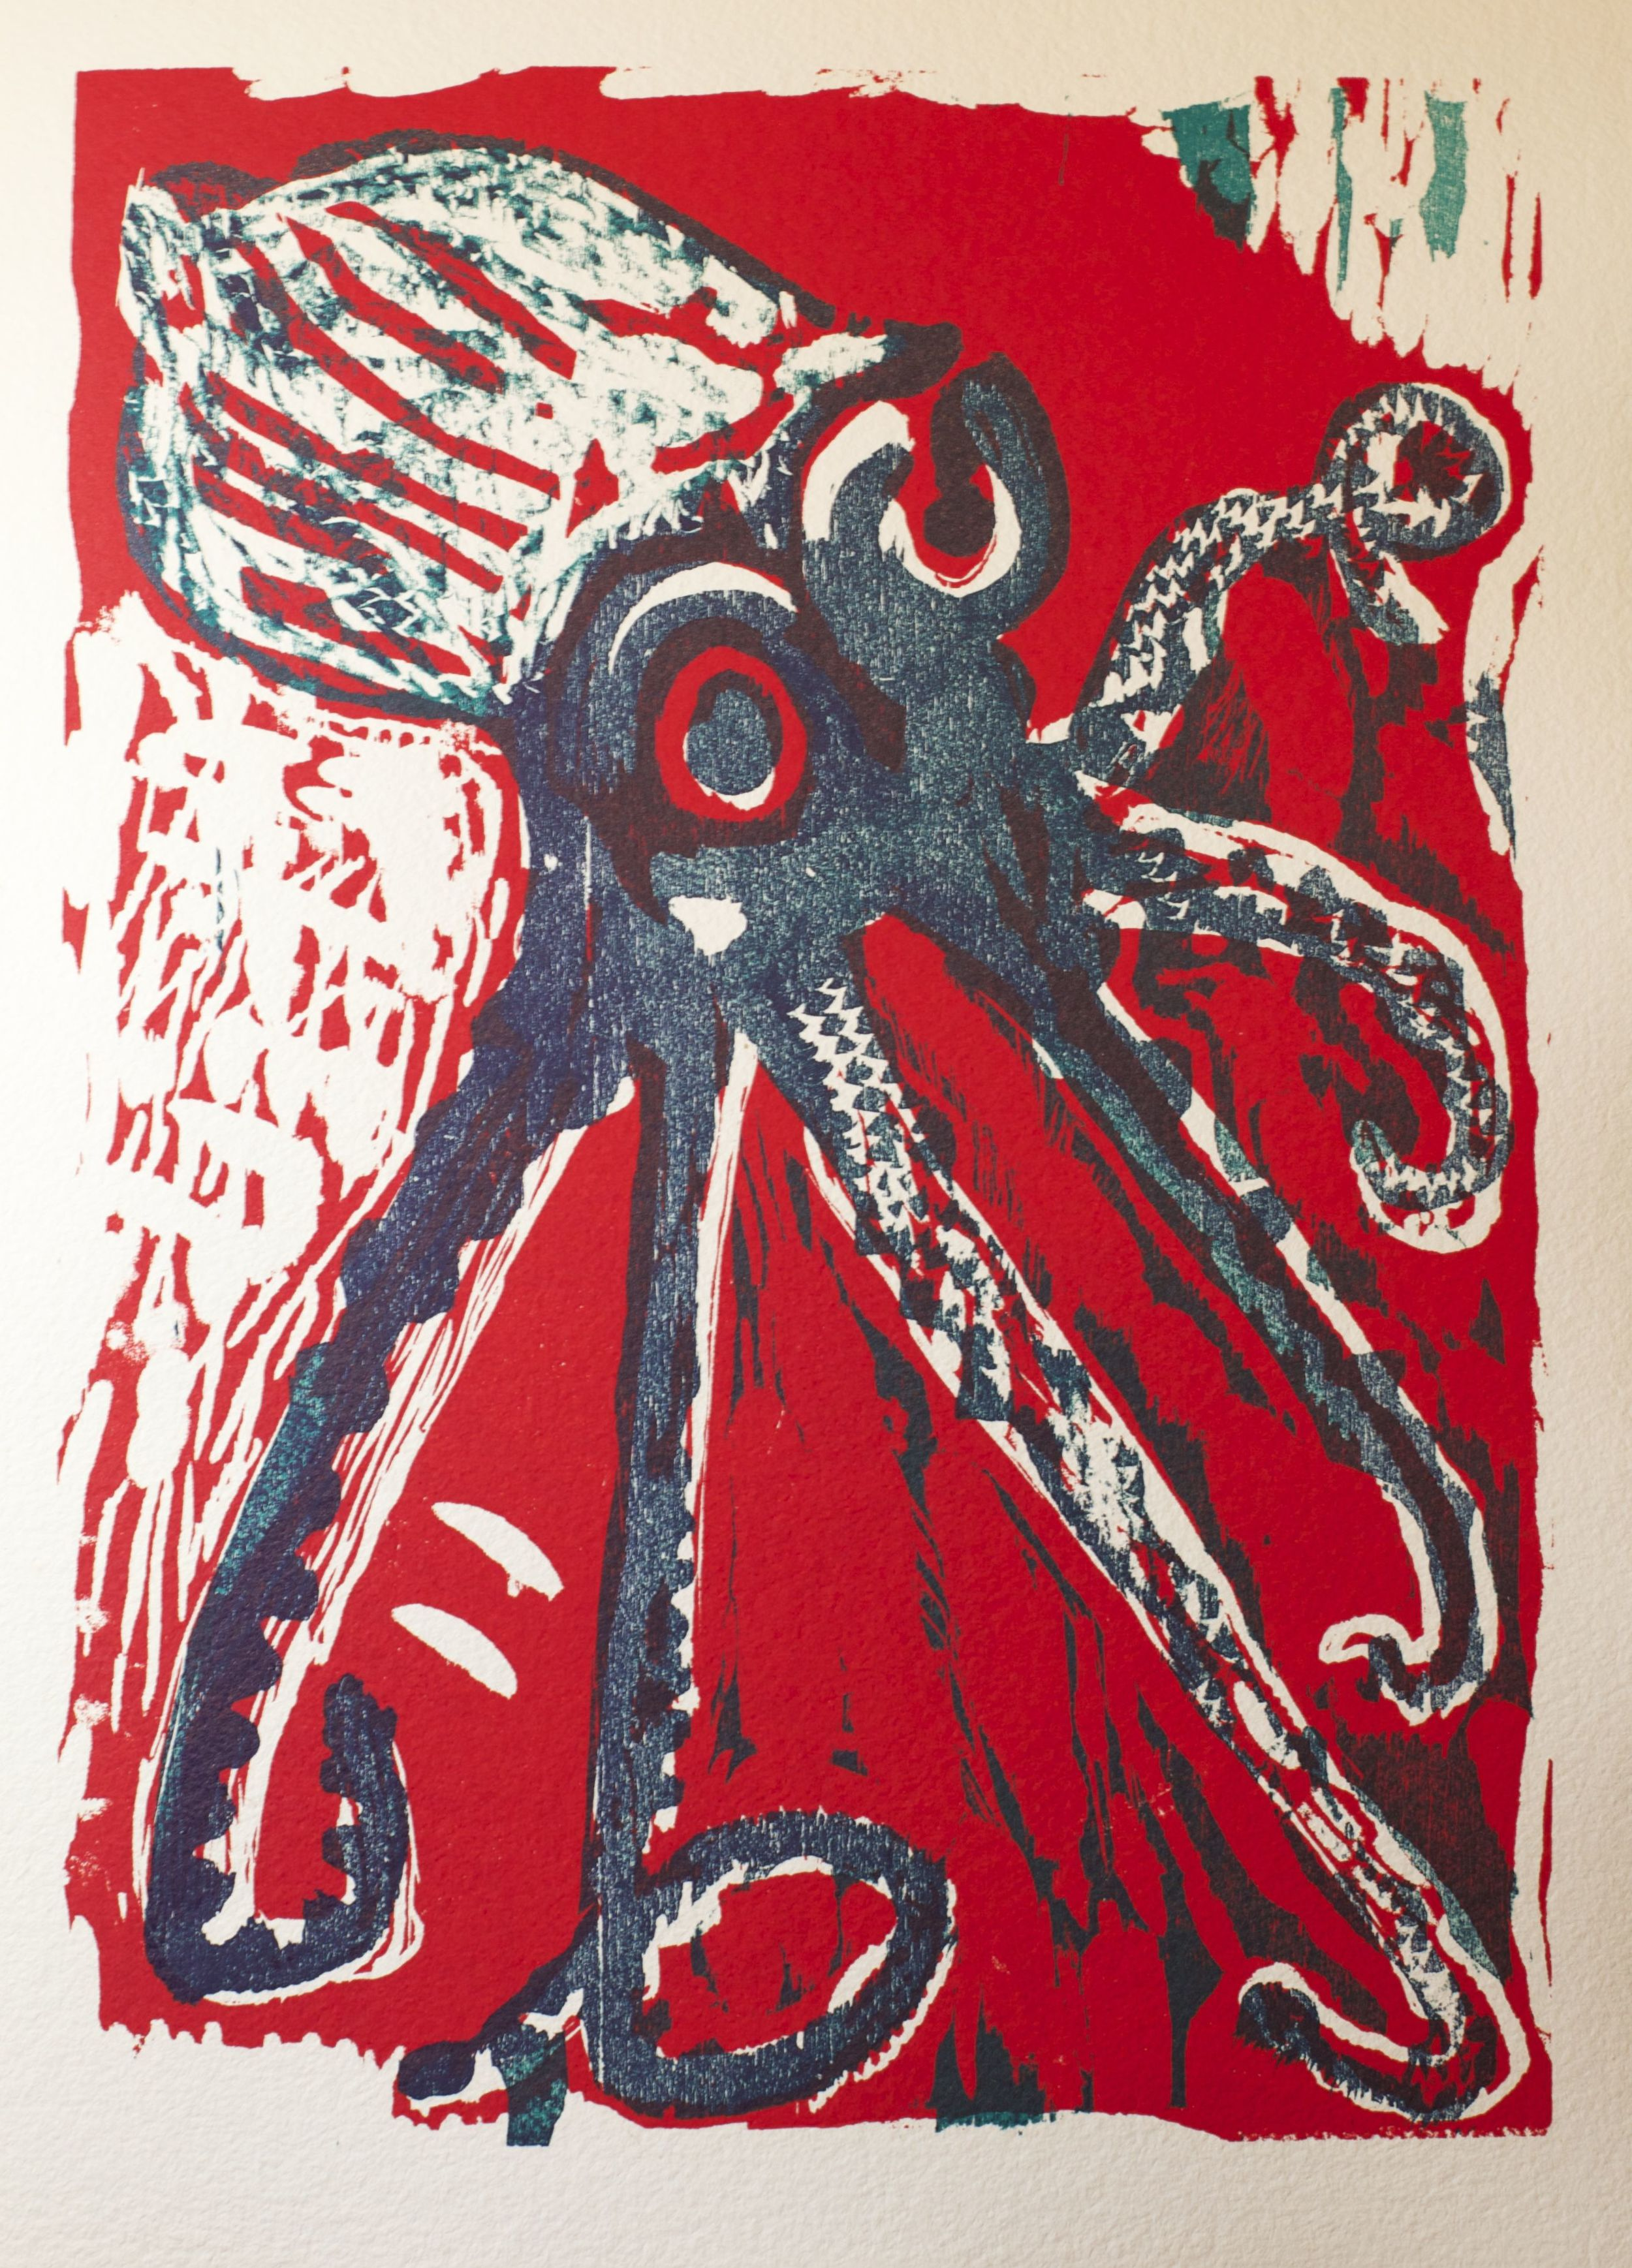 The Octopus (Le Poulpe)